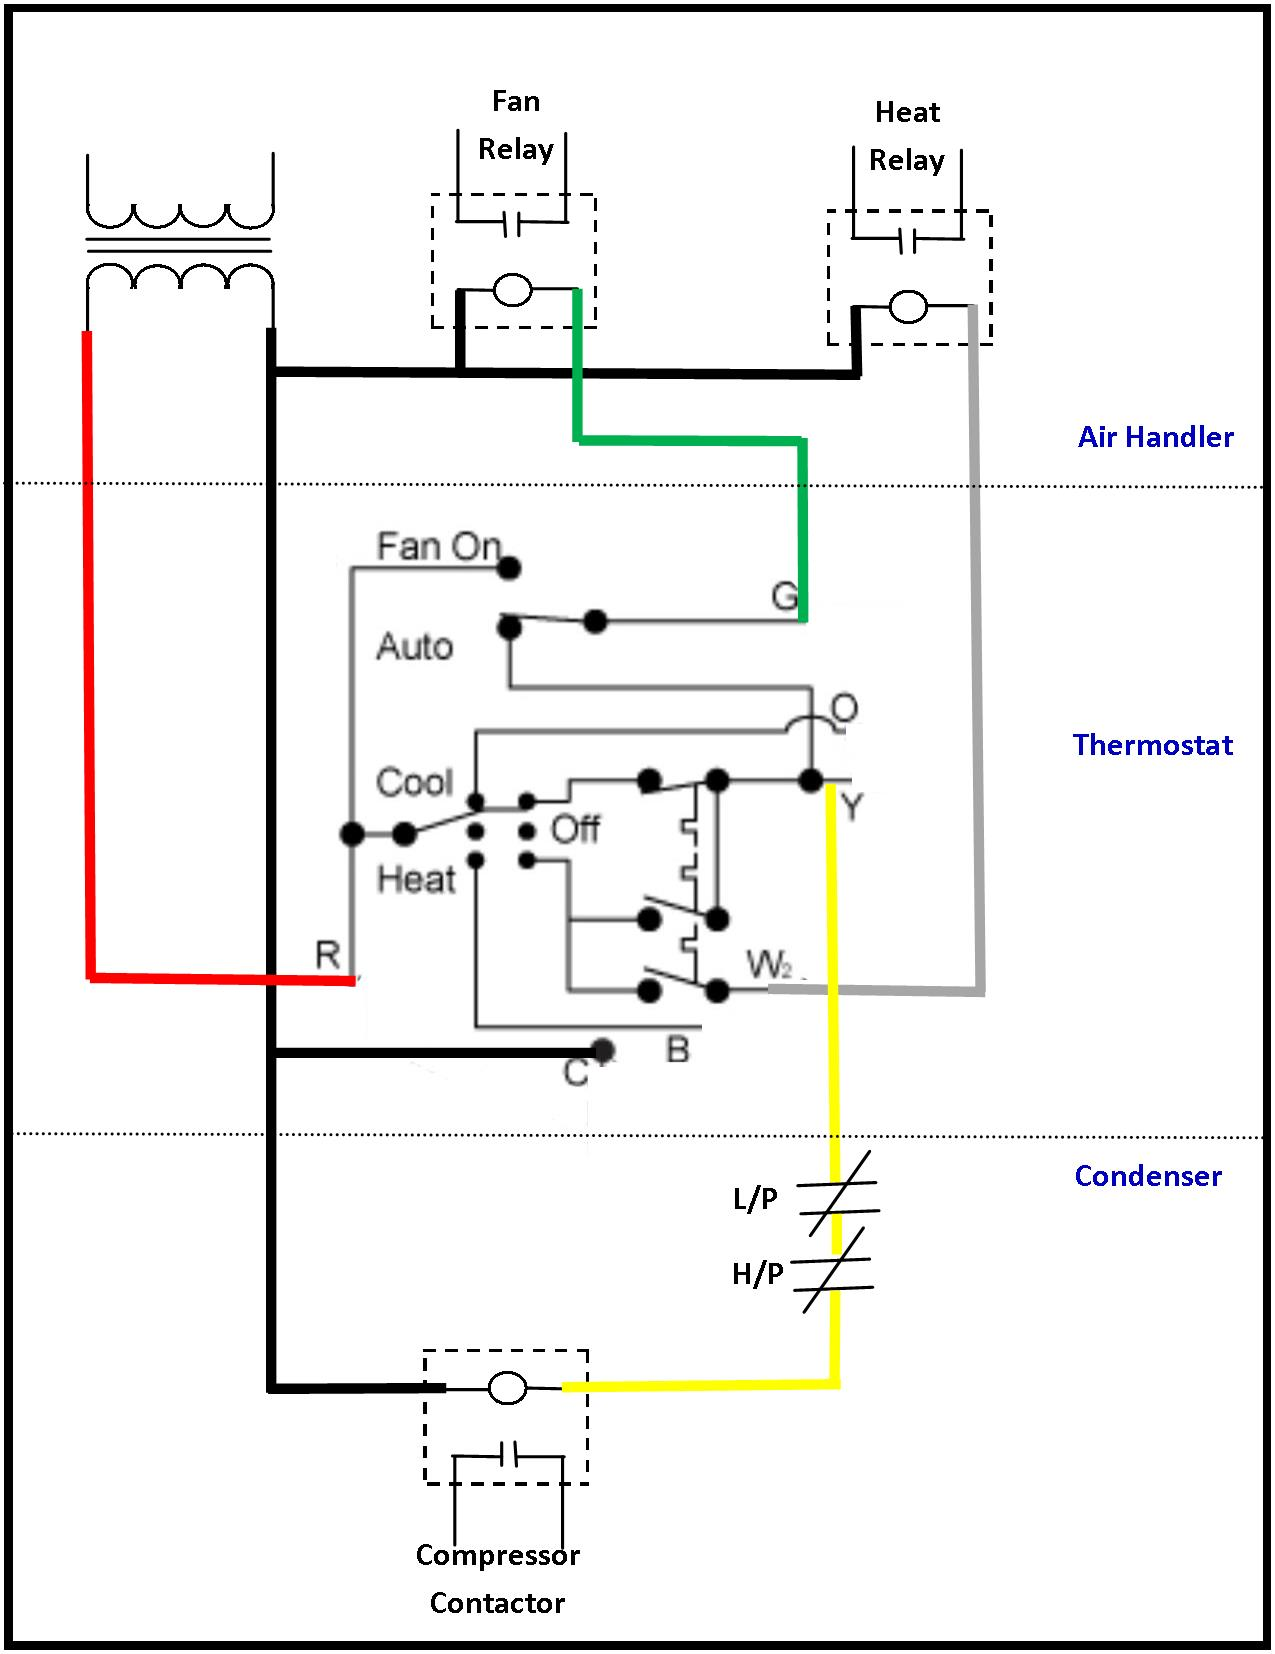 hvac wiring hvac image wiring diagram hvac compressor wiring diagram hvac wiring diagrams on hvac wiring